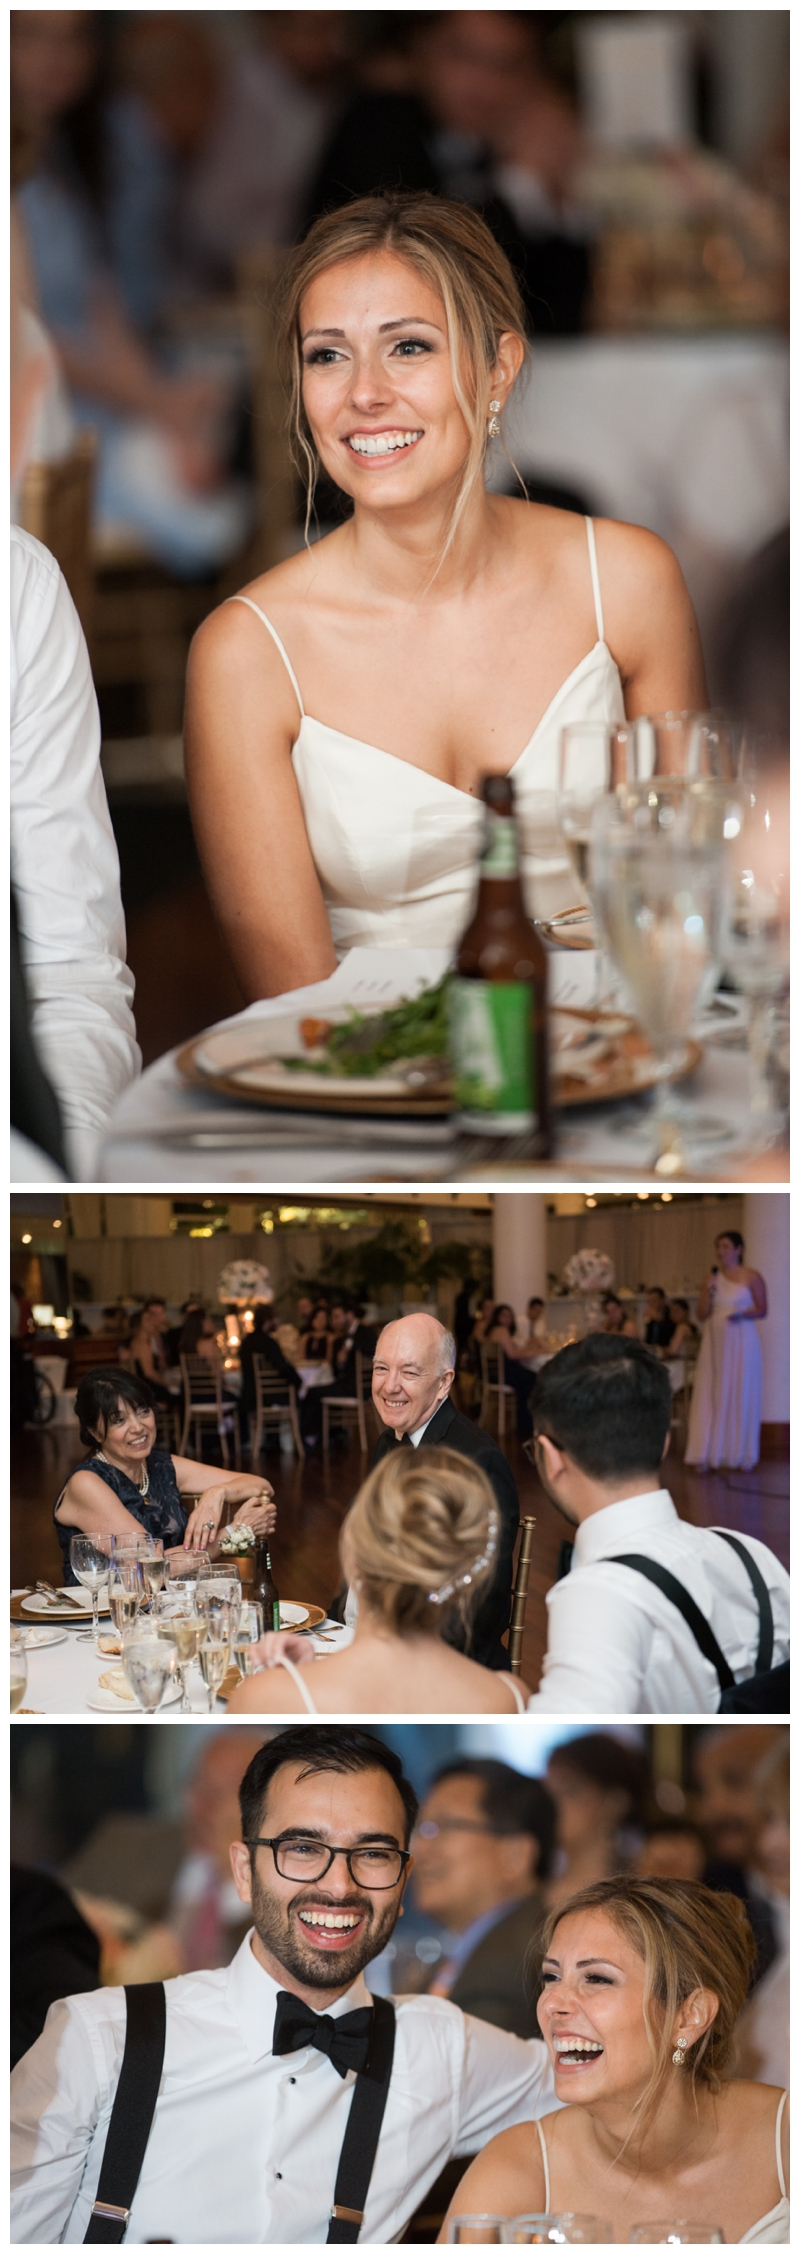 Wedding Reception in Washington DC at the Sequoia Restaurant in Georgetown by Rachael Foster Photography_0098.jpg